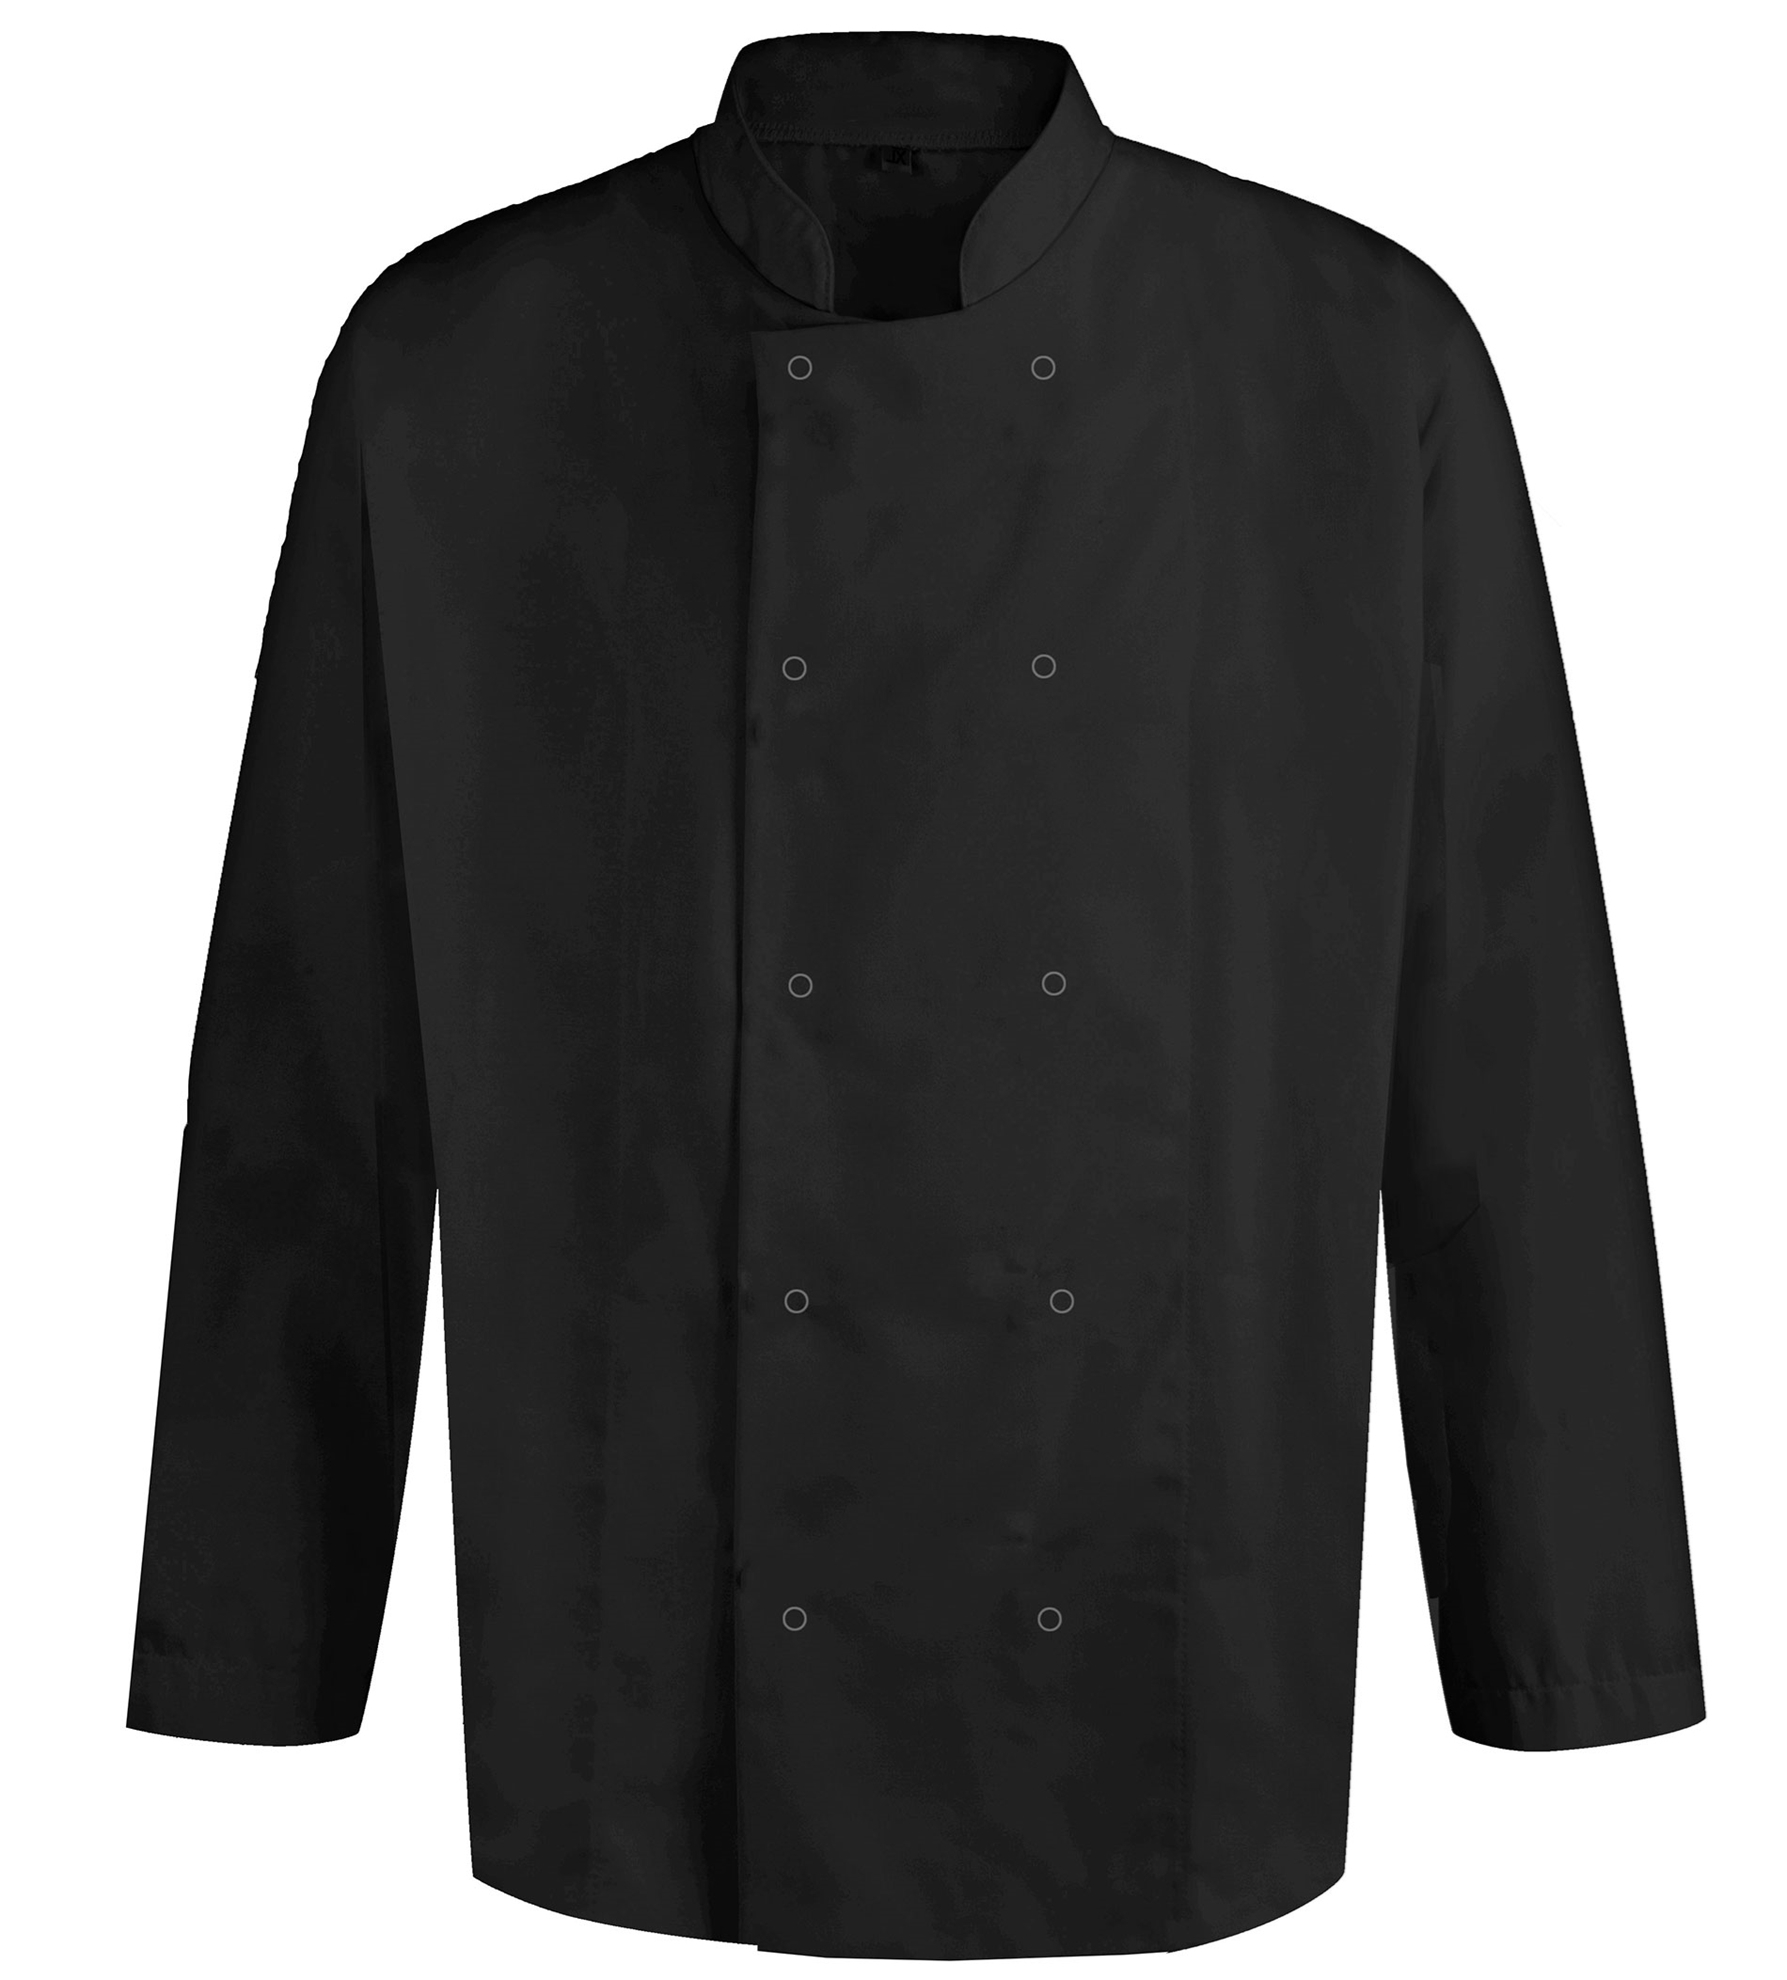 Picture of Unisex Long Sleeve Studded Chefs Jacket - Black